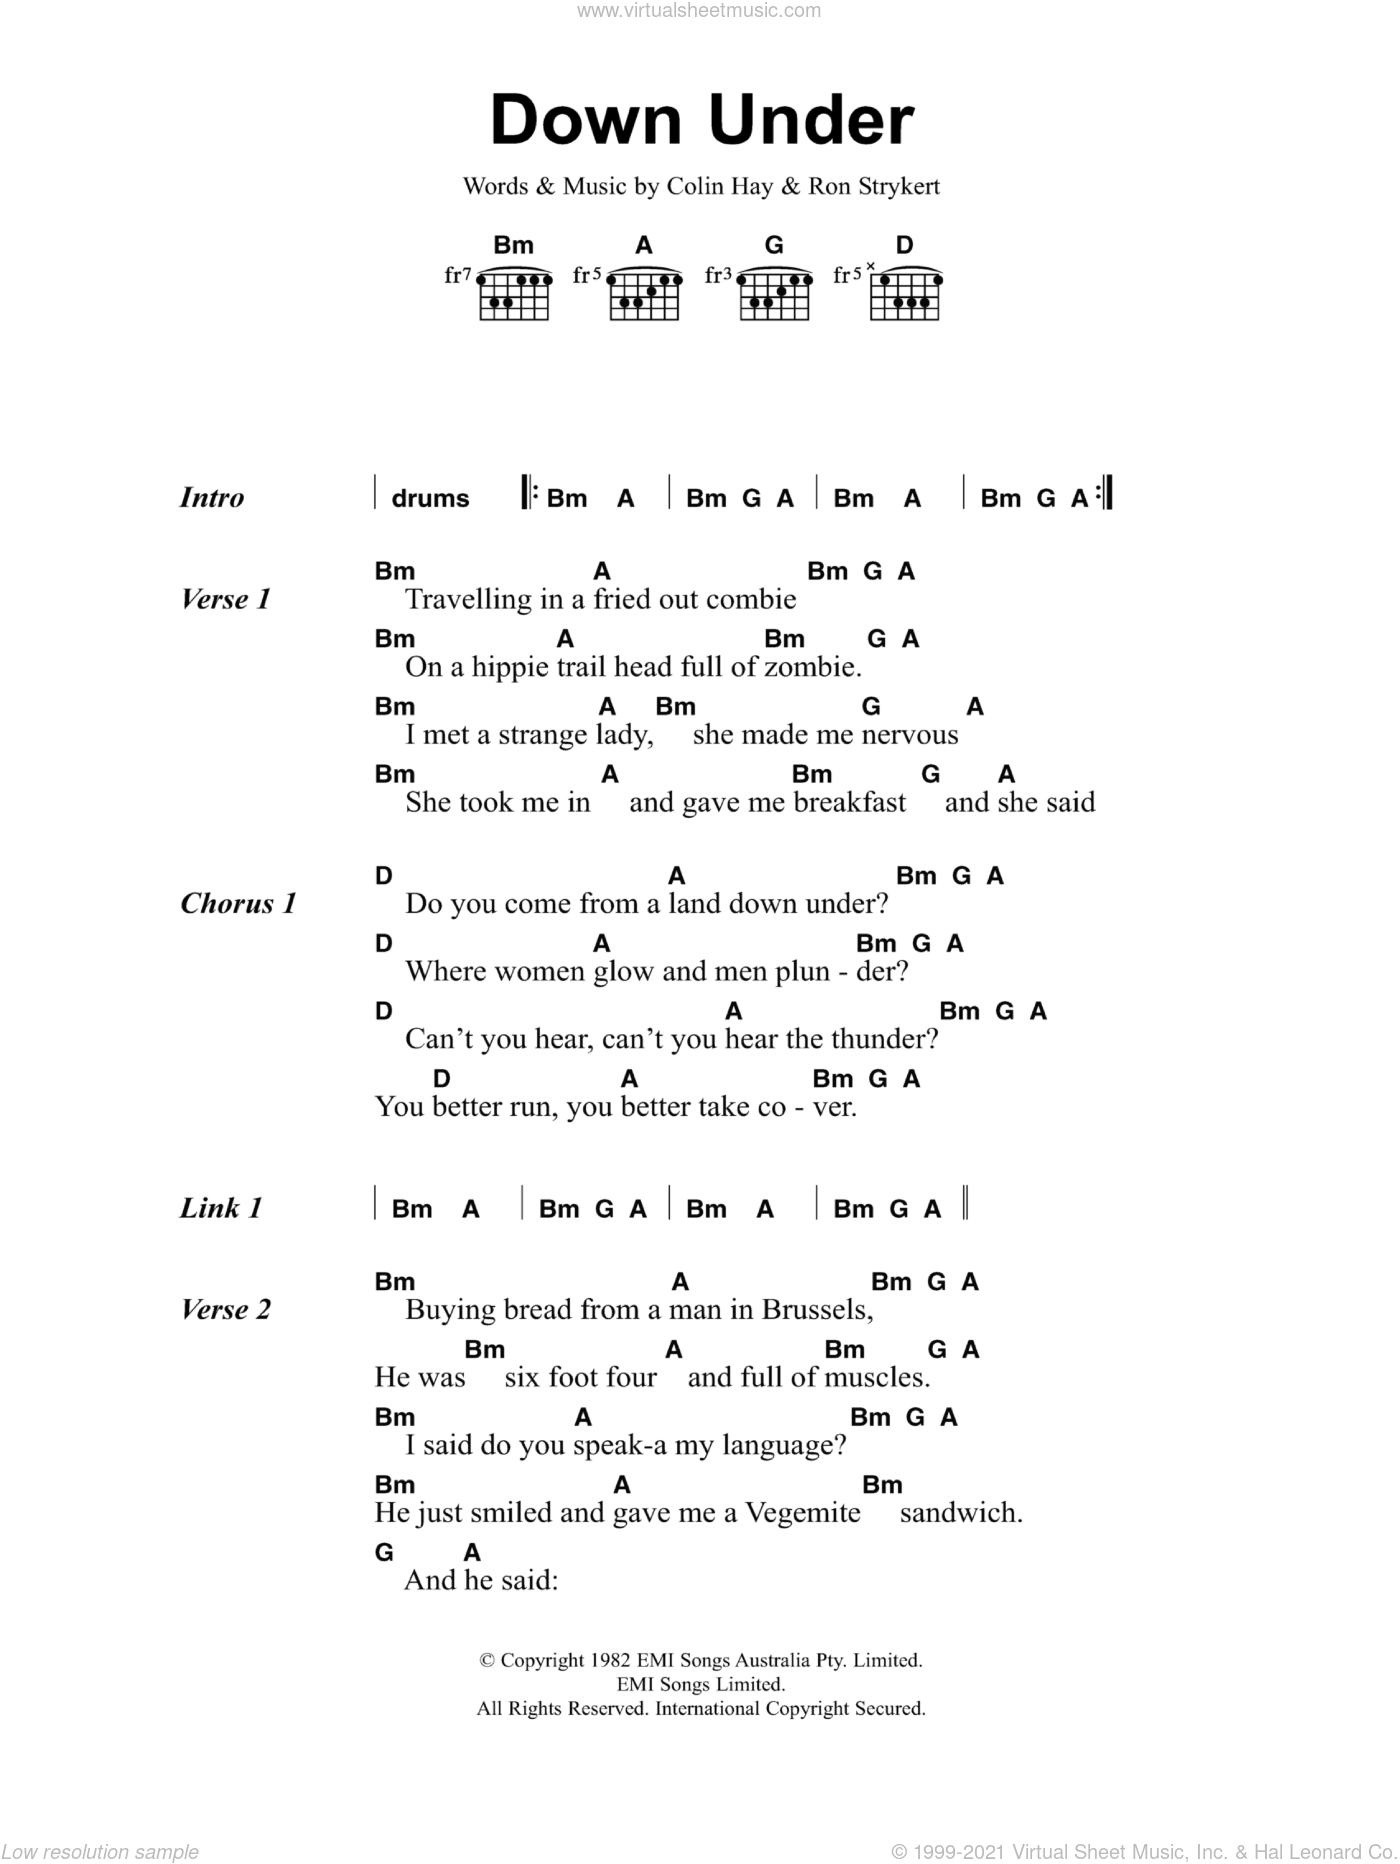 Down Under sheet music for guitar (chords) by Men At Work, Colin Hay and Ron Strykert, intermediate. Score Image Preview.